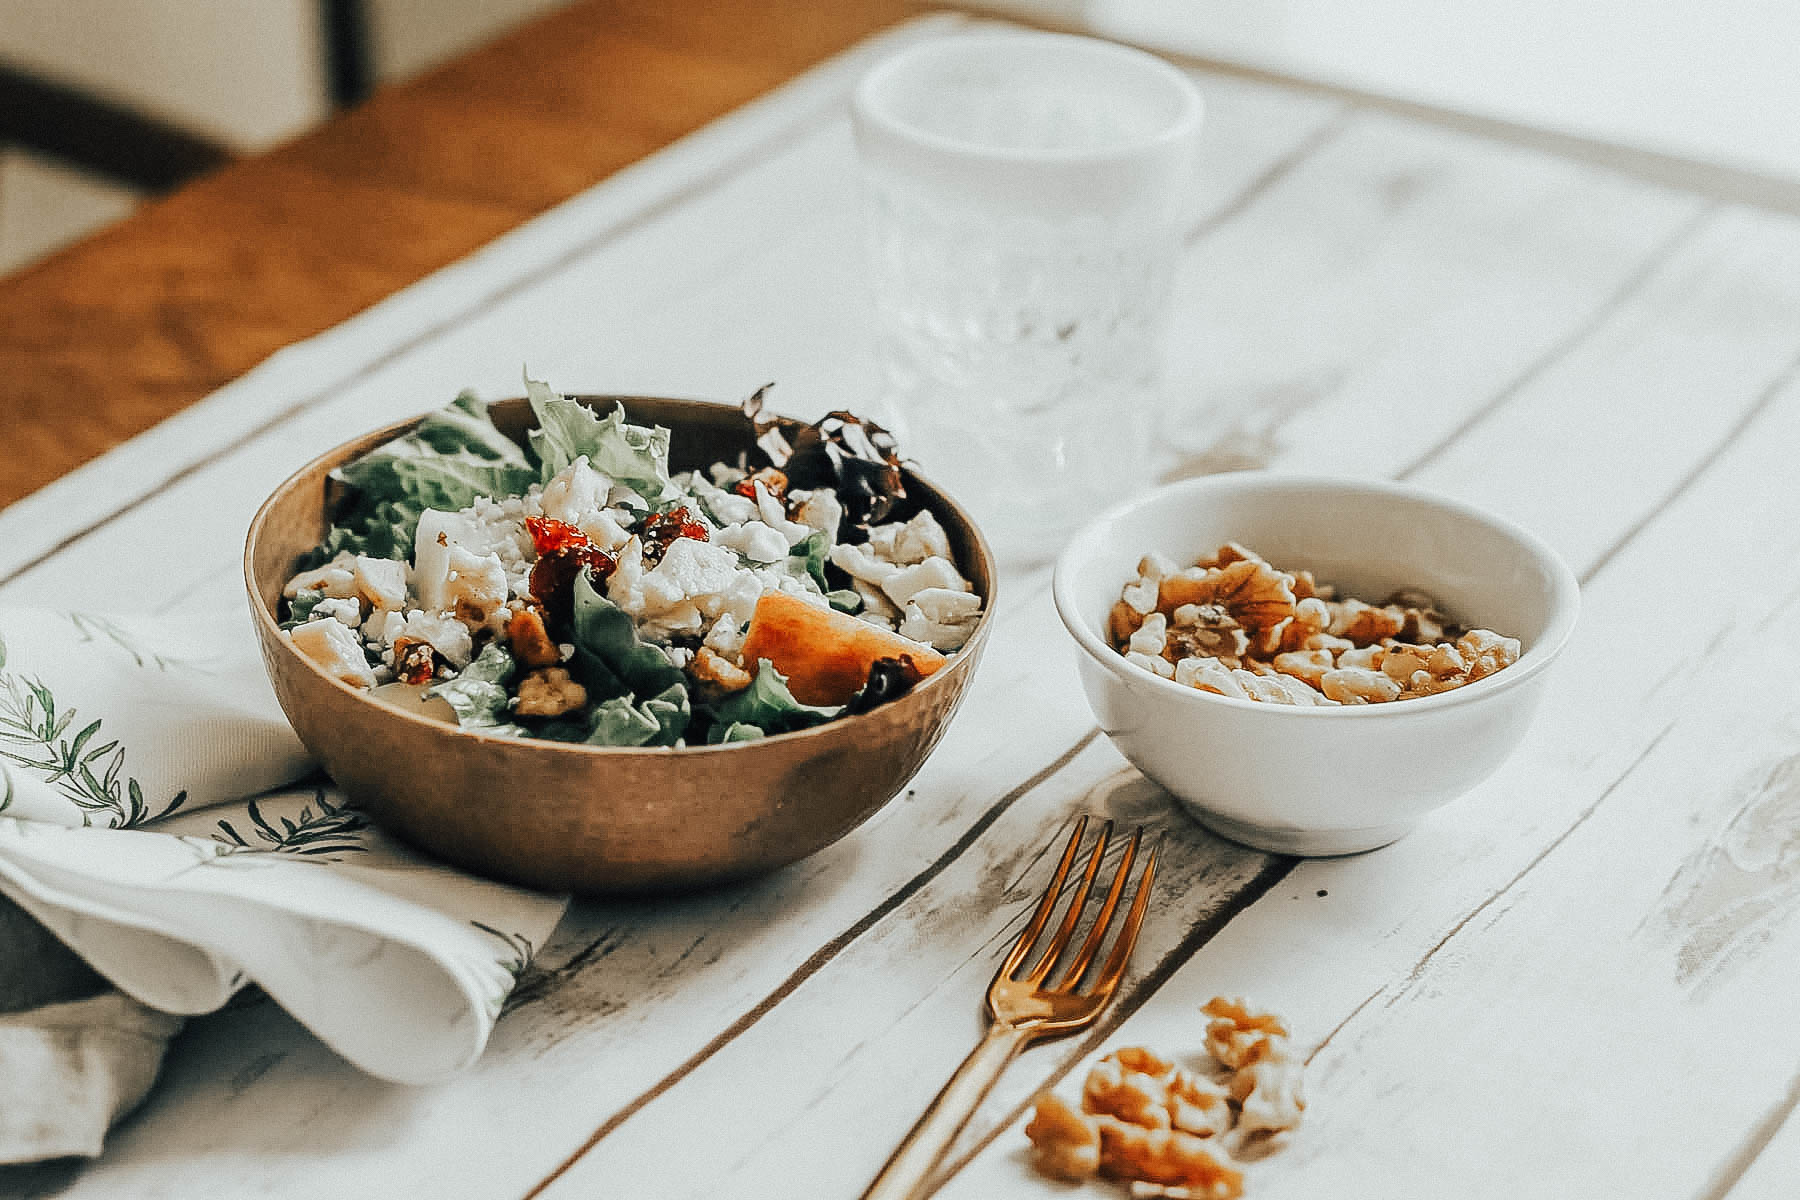 7 Items to Keep in Your Kitchen for Affordable Weekday Meals